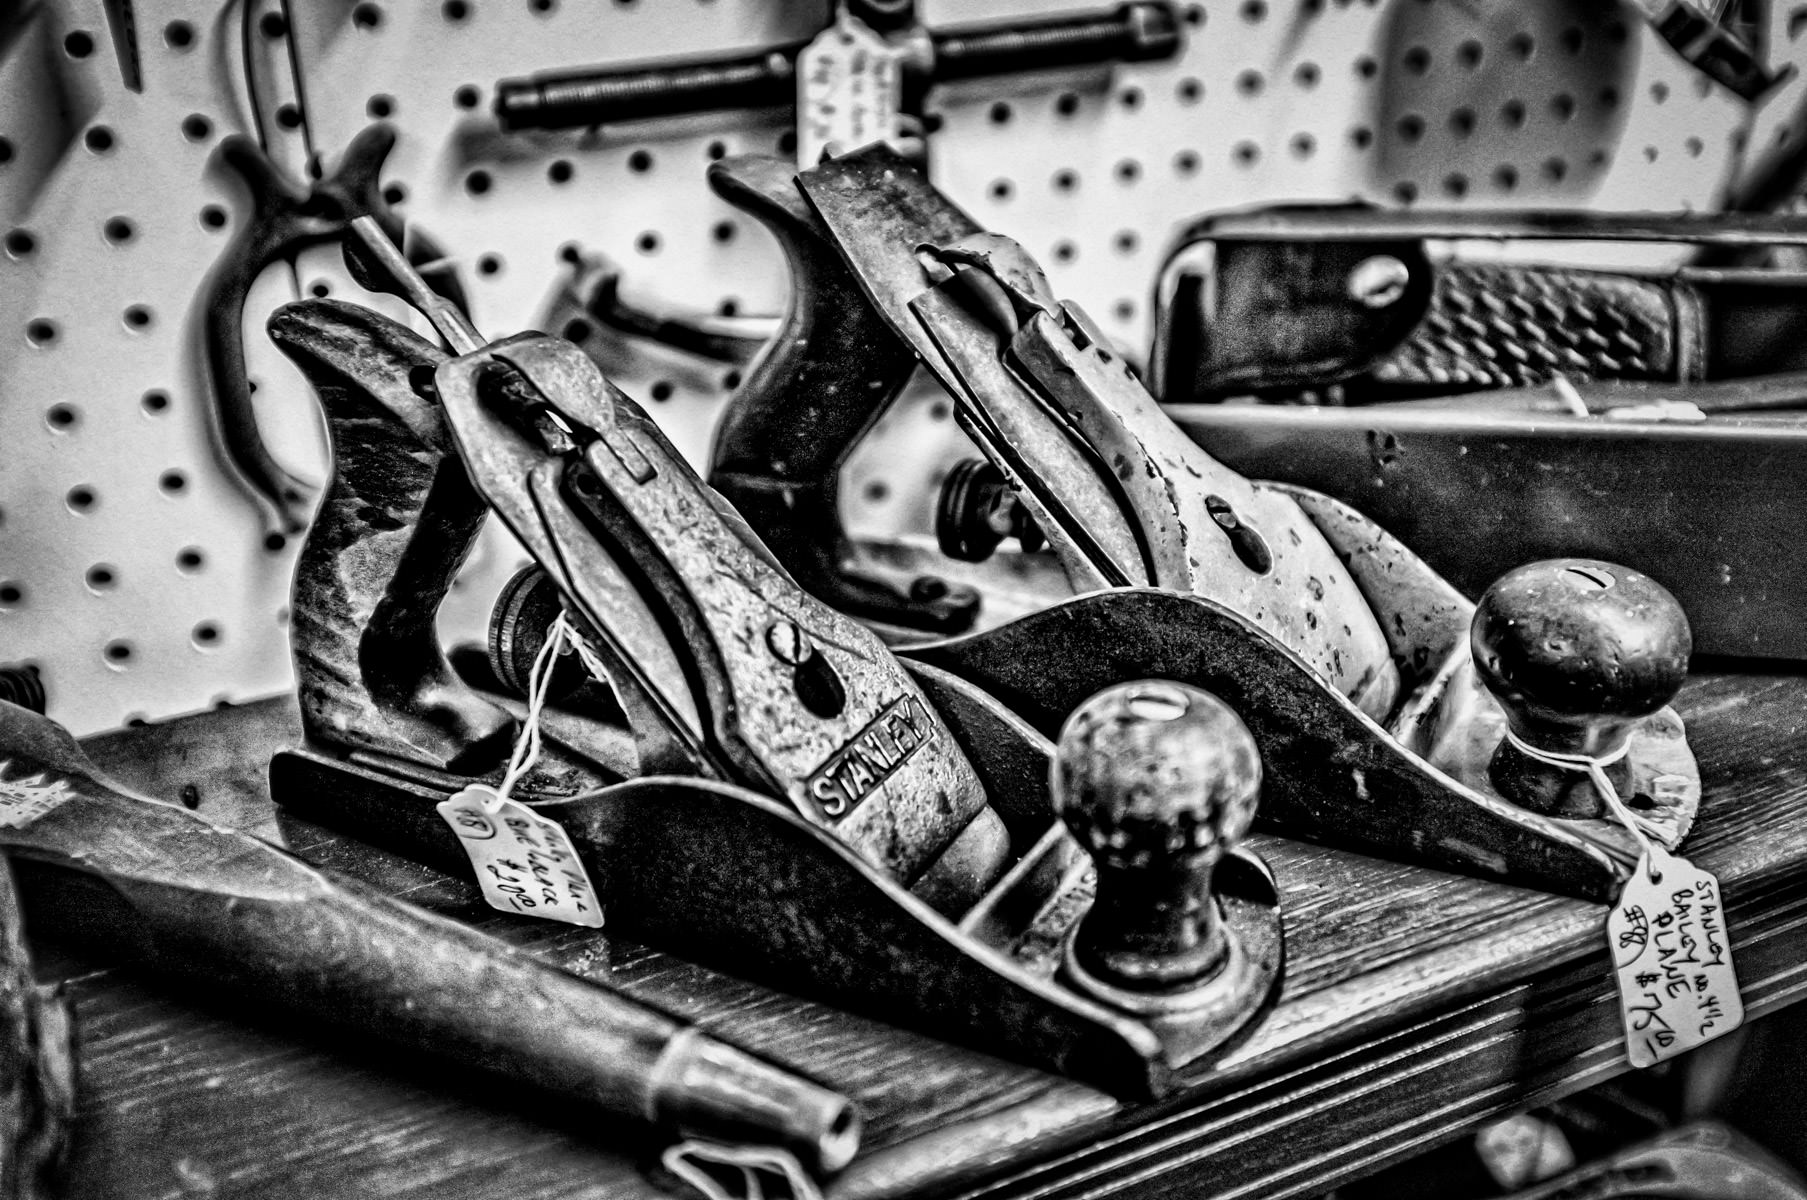 Two antique hand planes found in a shop in Gladewater, Texas.